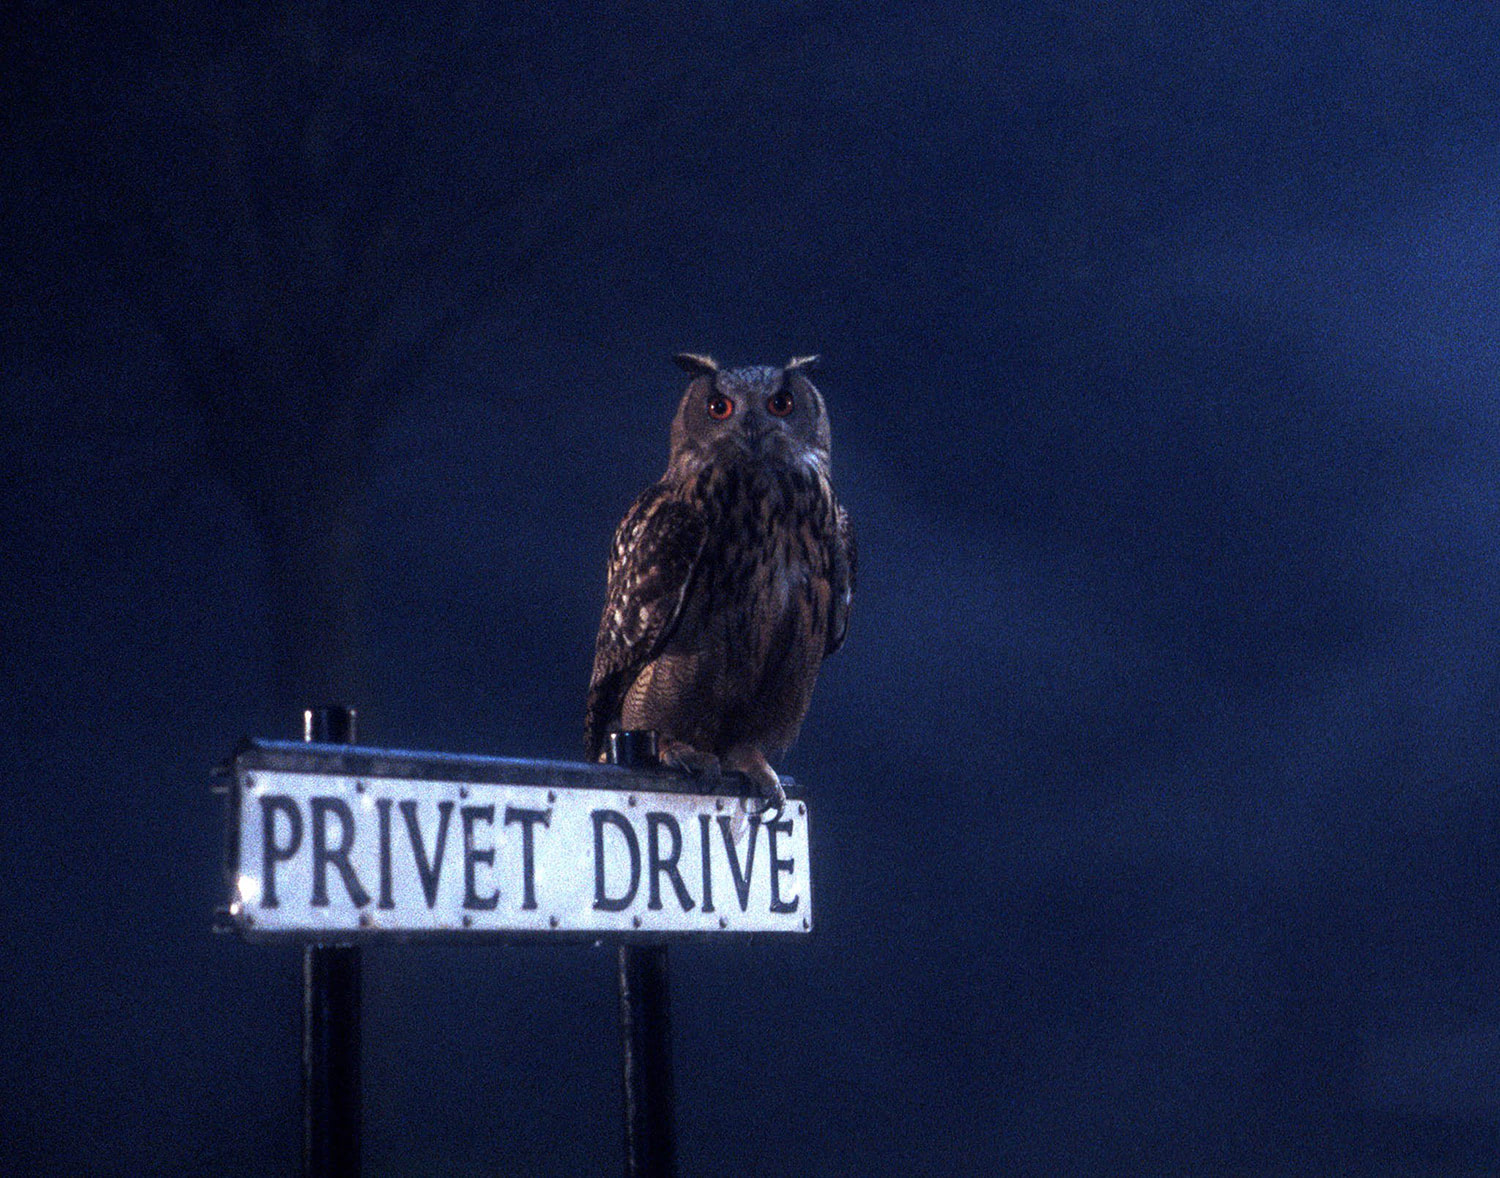 An owl in Privet Drive